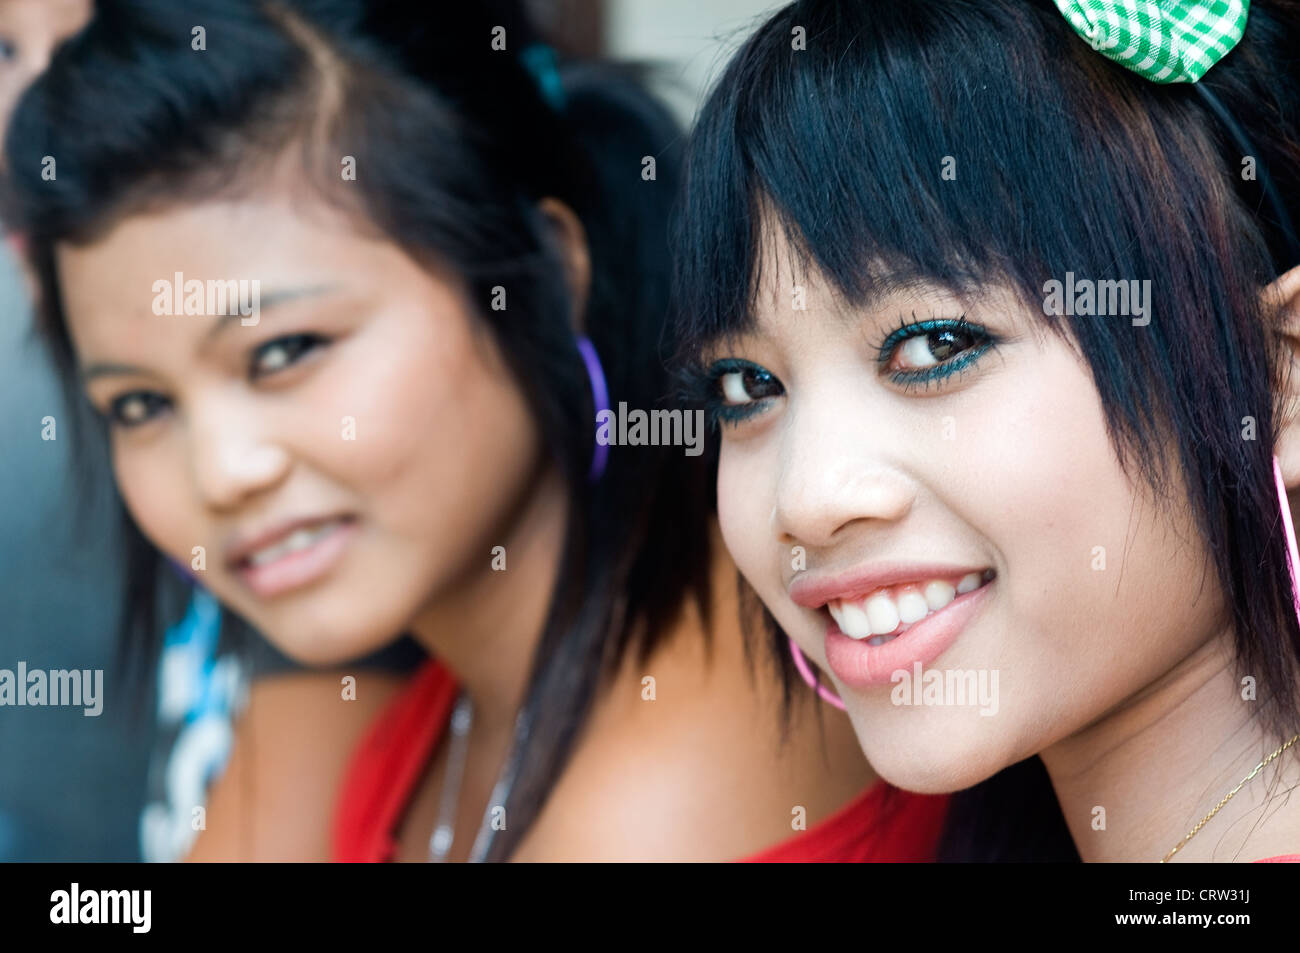 kuta women Answer 1 of 11: hey i heard that there are women in kuta who approach men at night and ask if they would like some company is this true i.